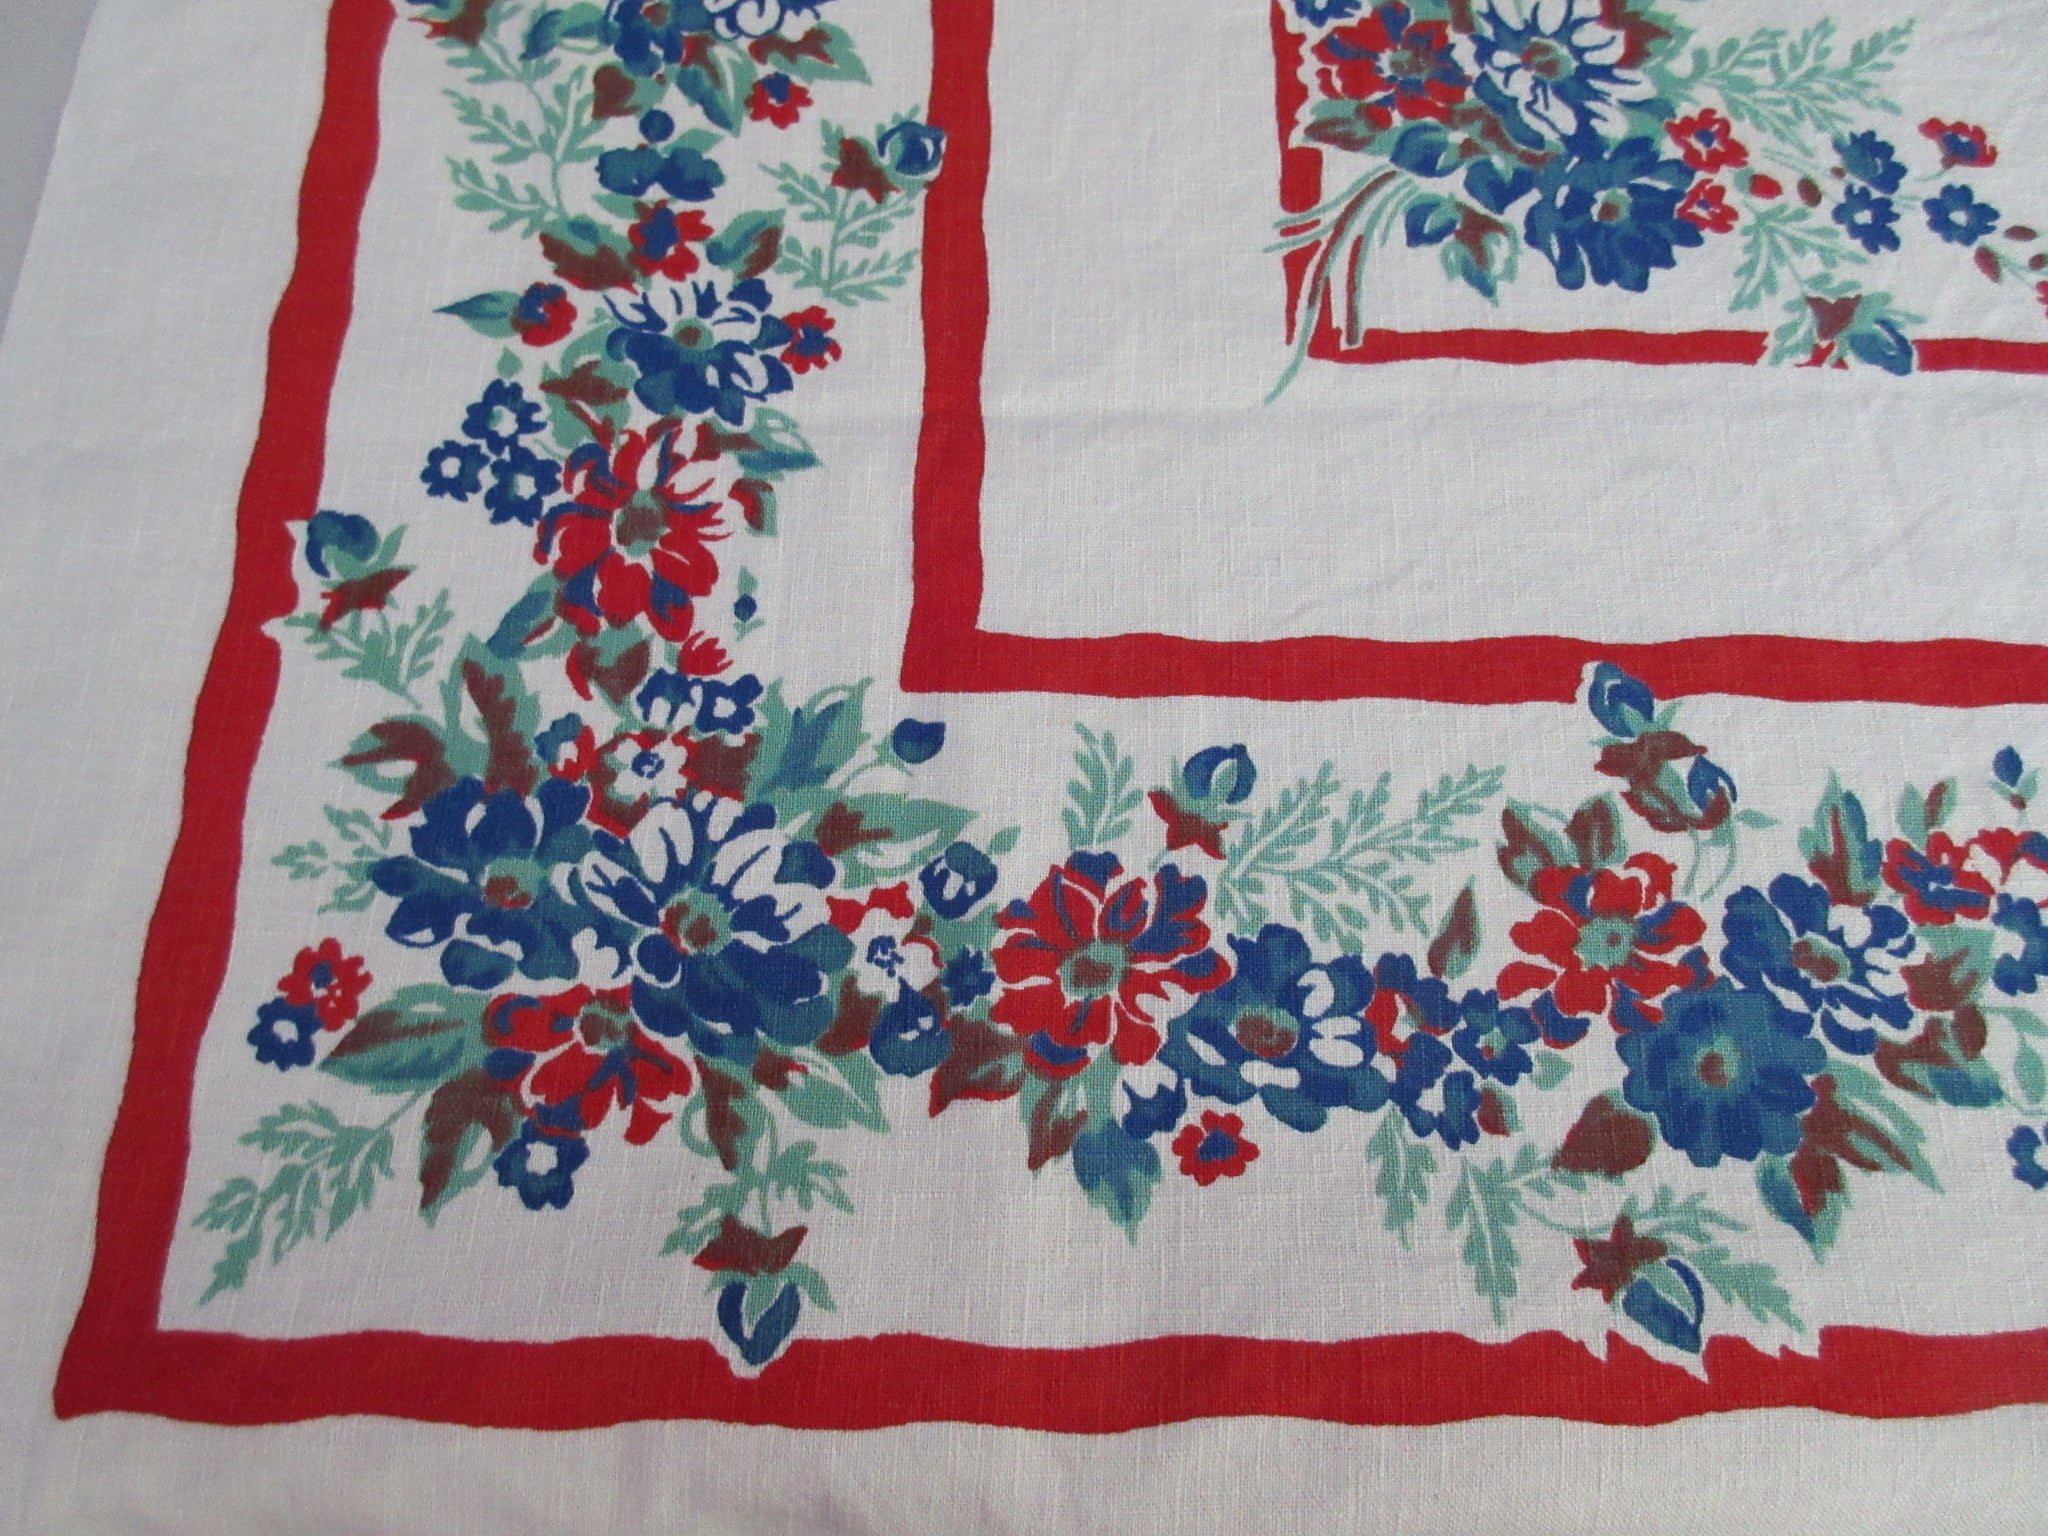 Primary Blue Green Floral on Red Vintage Printed Tablecloth (48 X 47)